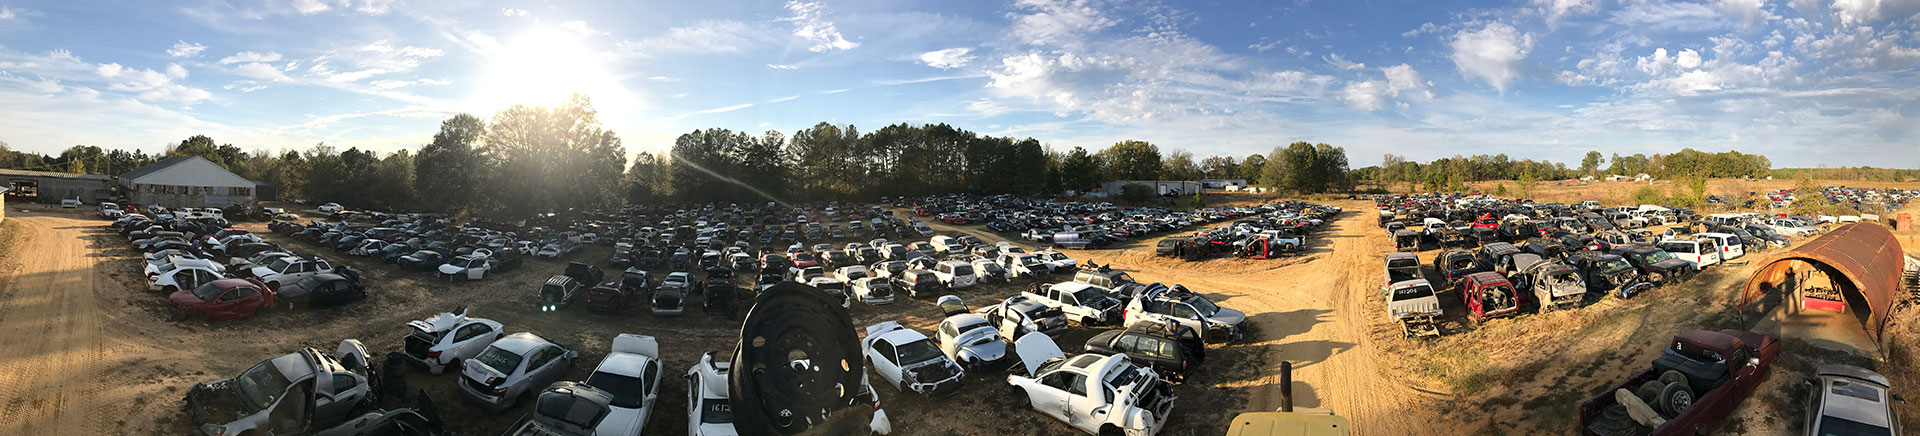 Wrecked cars in Keith Auto Recyclers salvage yard